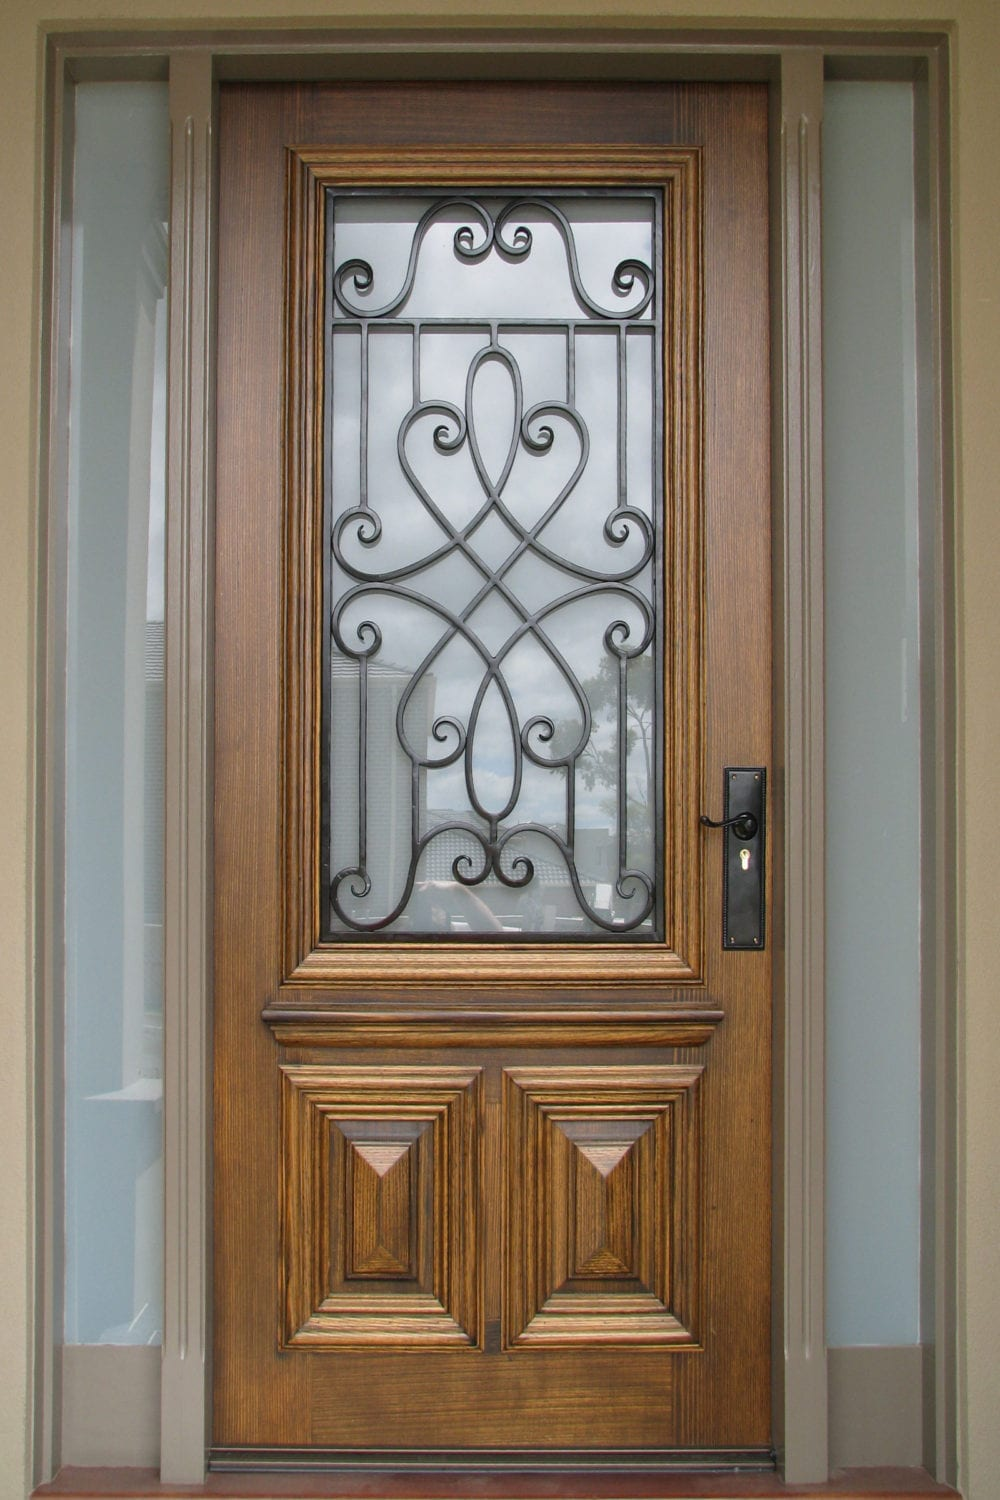 2 & Timber \u0026 wrought Iron doors add beauty elegance \u0026 security to your ... Pezcame.Com